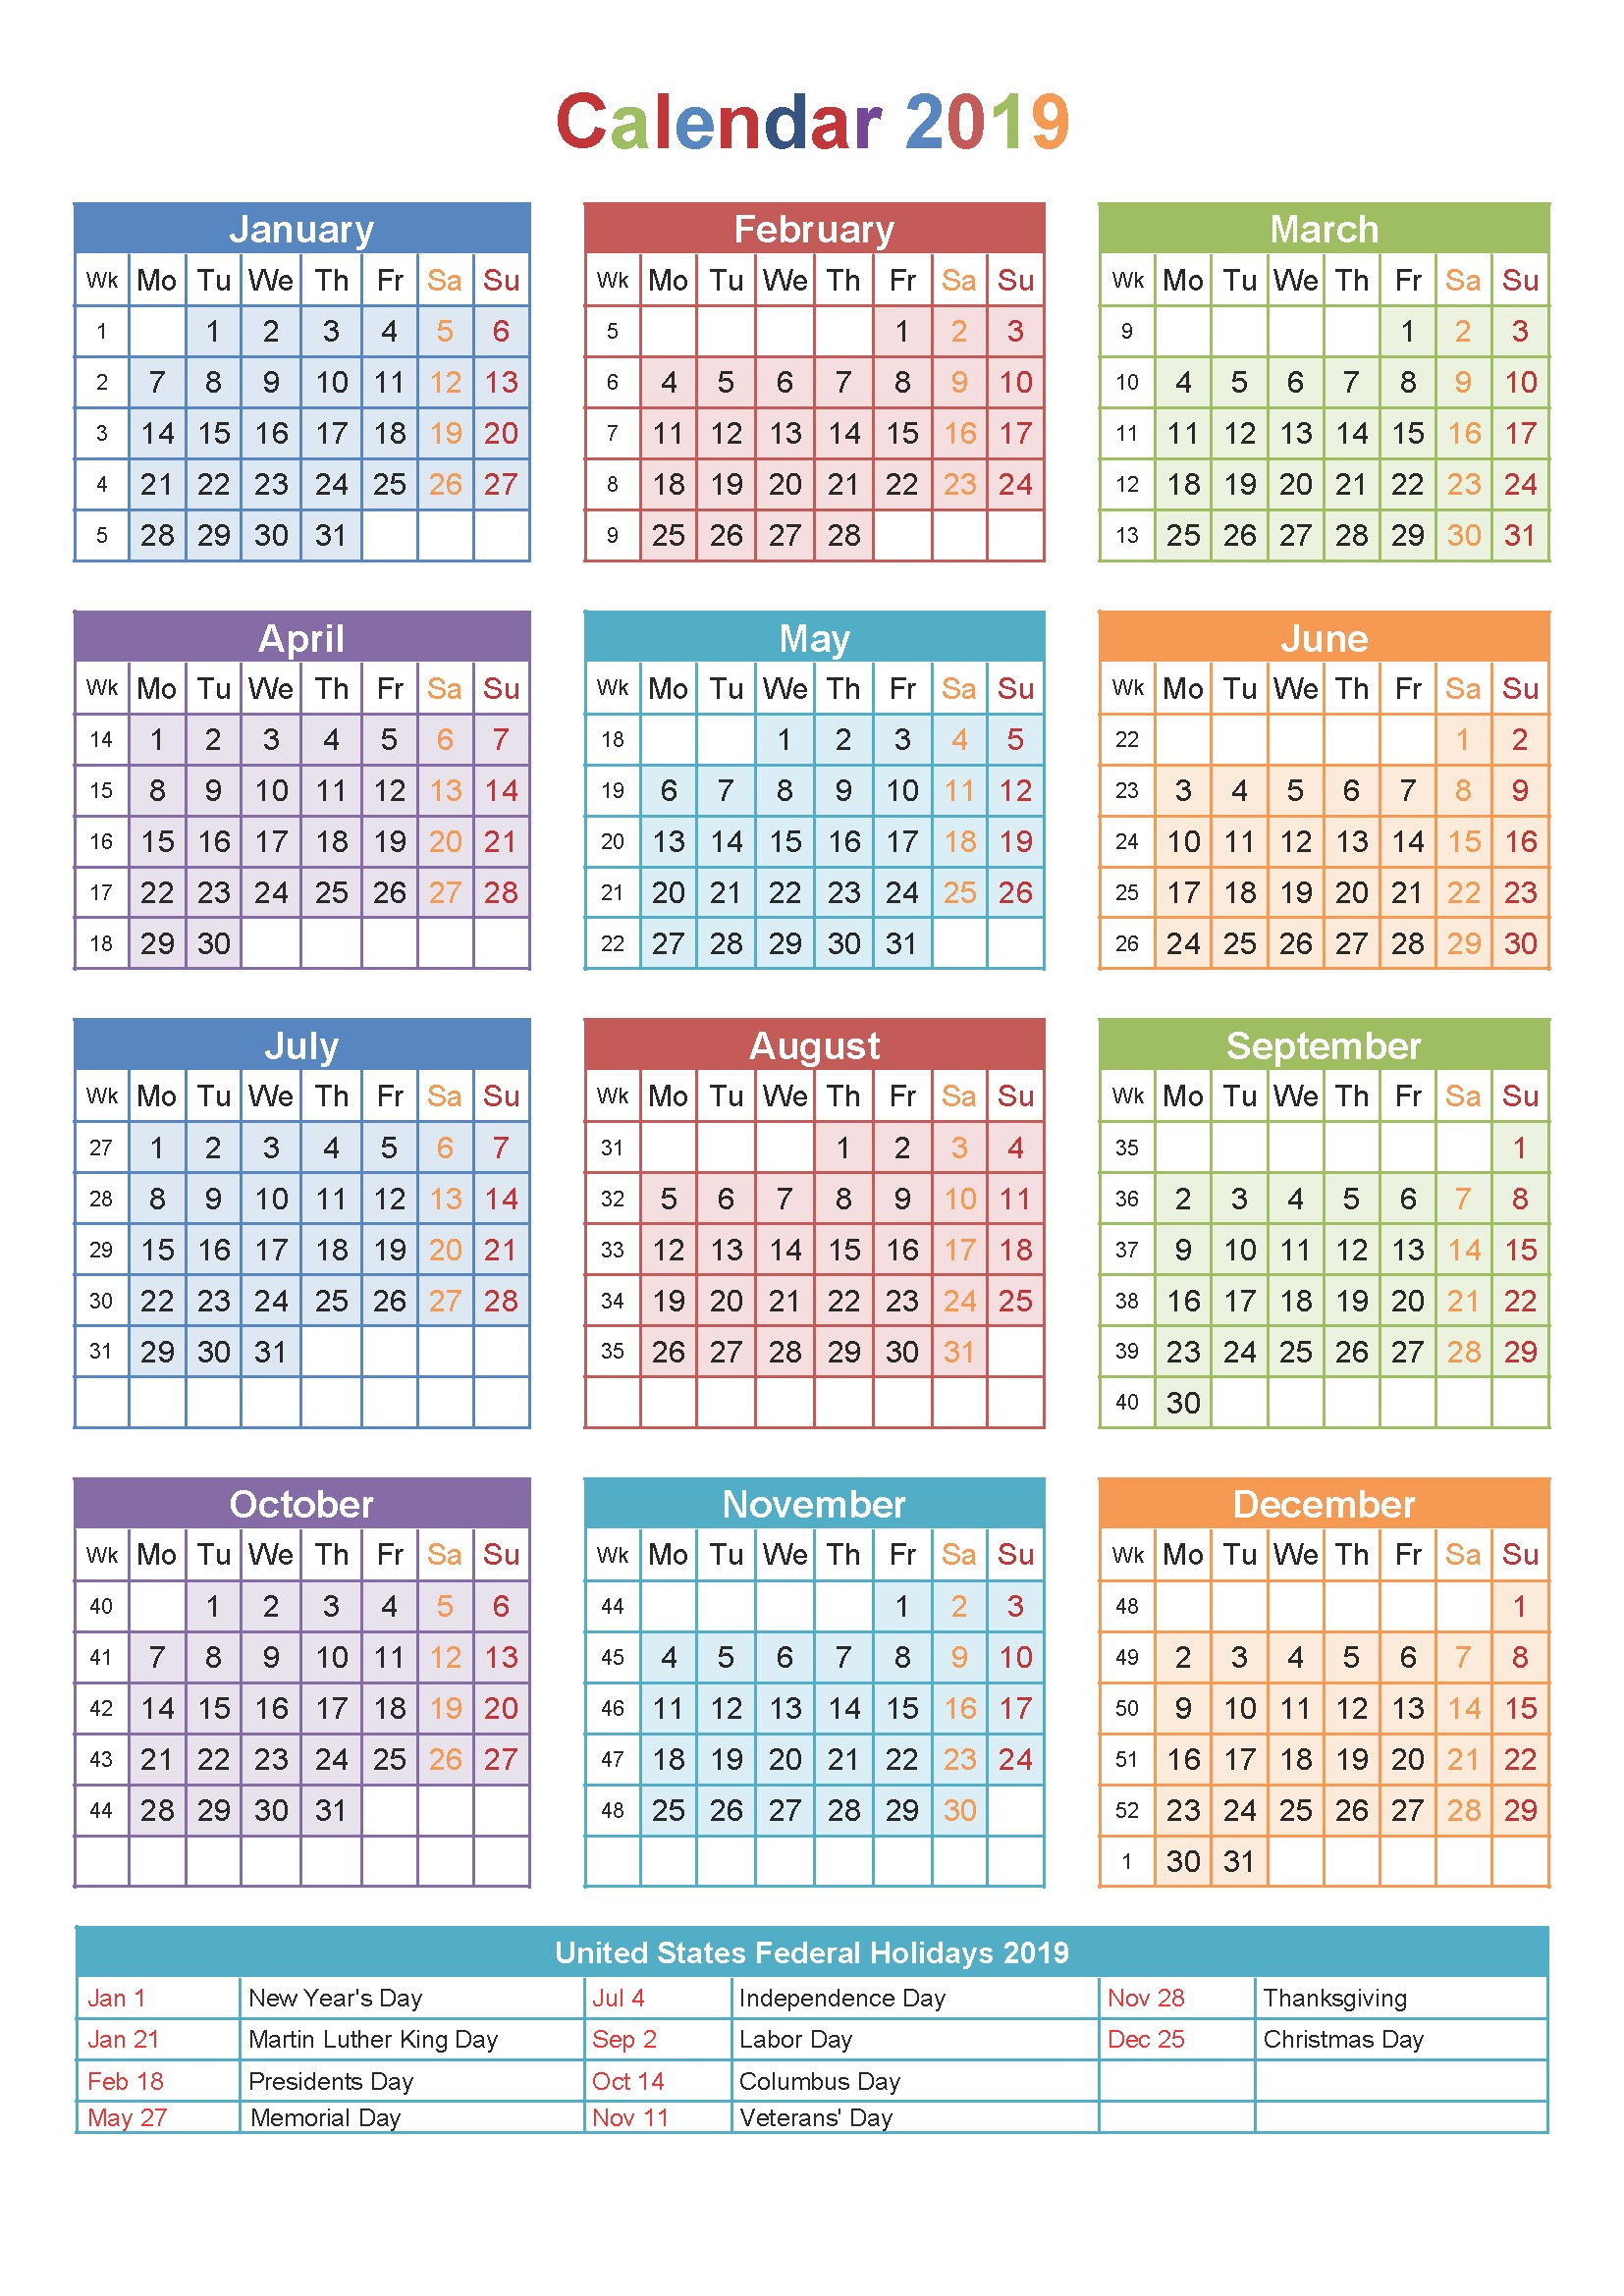 March 2019 Calendar Uk Printable Mejores Y Más Novedosos Coloring Pages Calendar with Federal Holidaysble Three Year Excel Of March 2019 Calendar Uk Printable Más Reciente 2018 Editorial Calendar Templates Sports Team Template Blog Sneak P